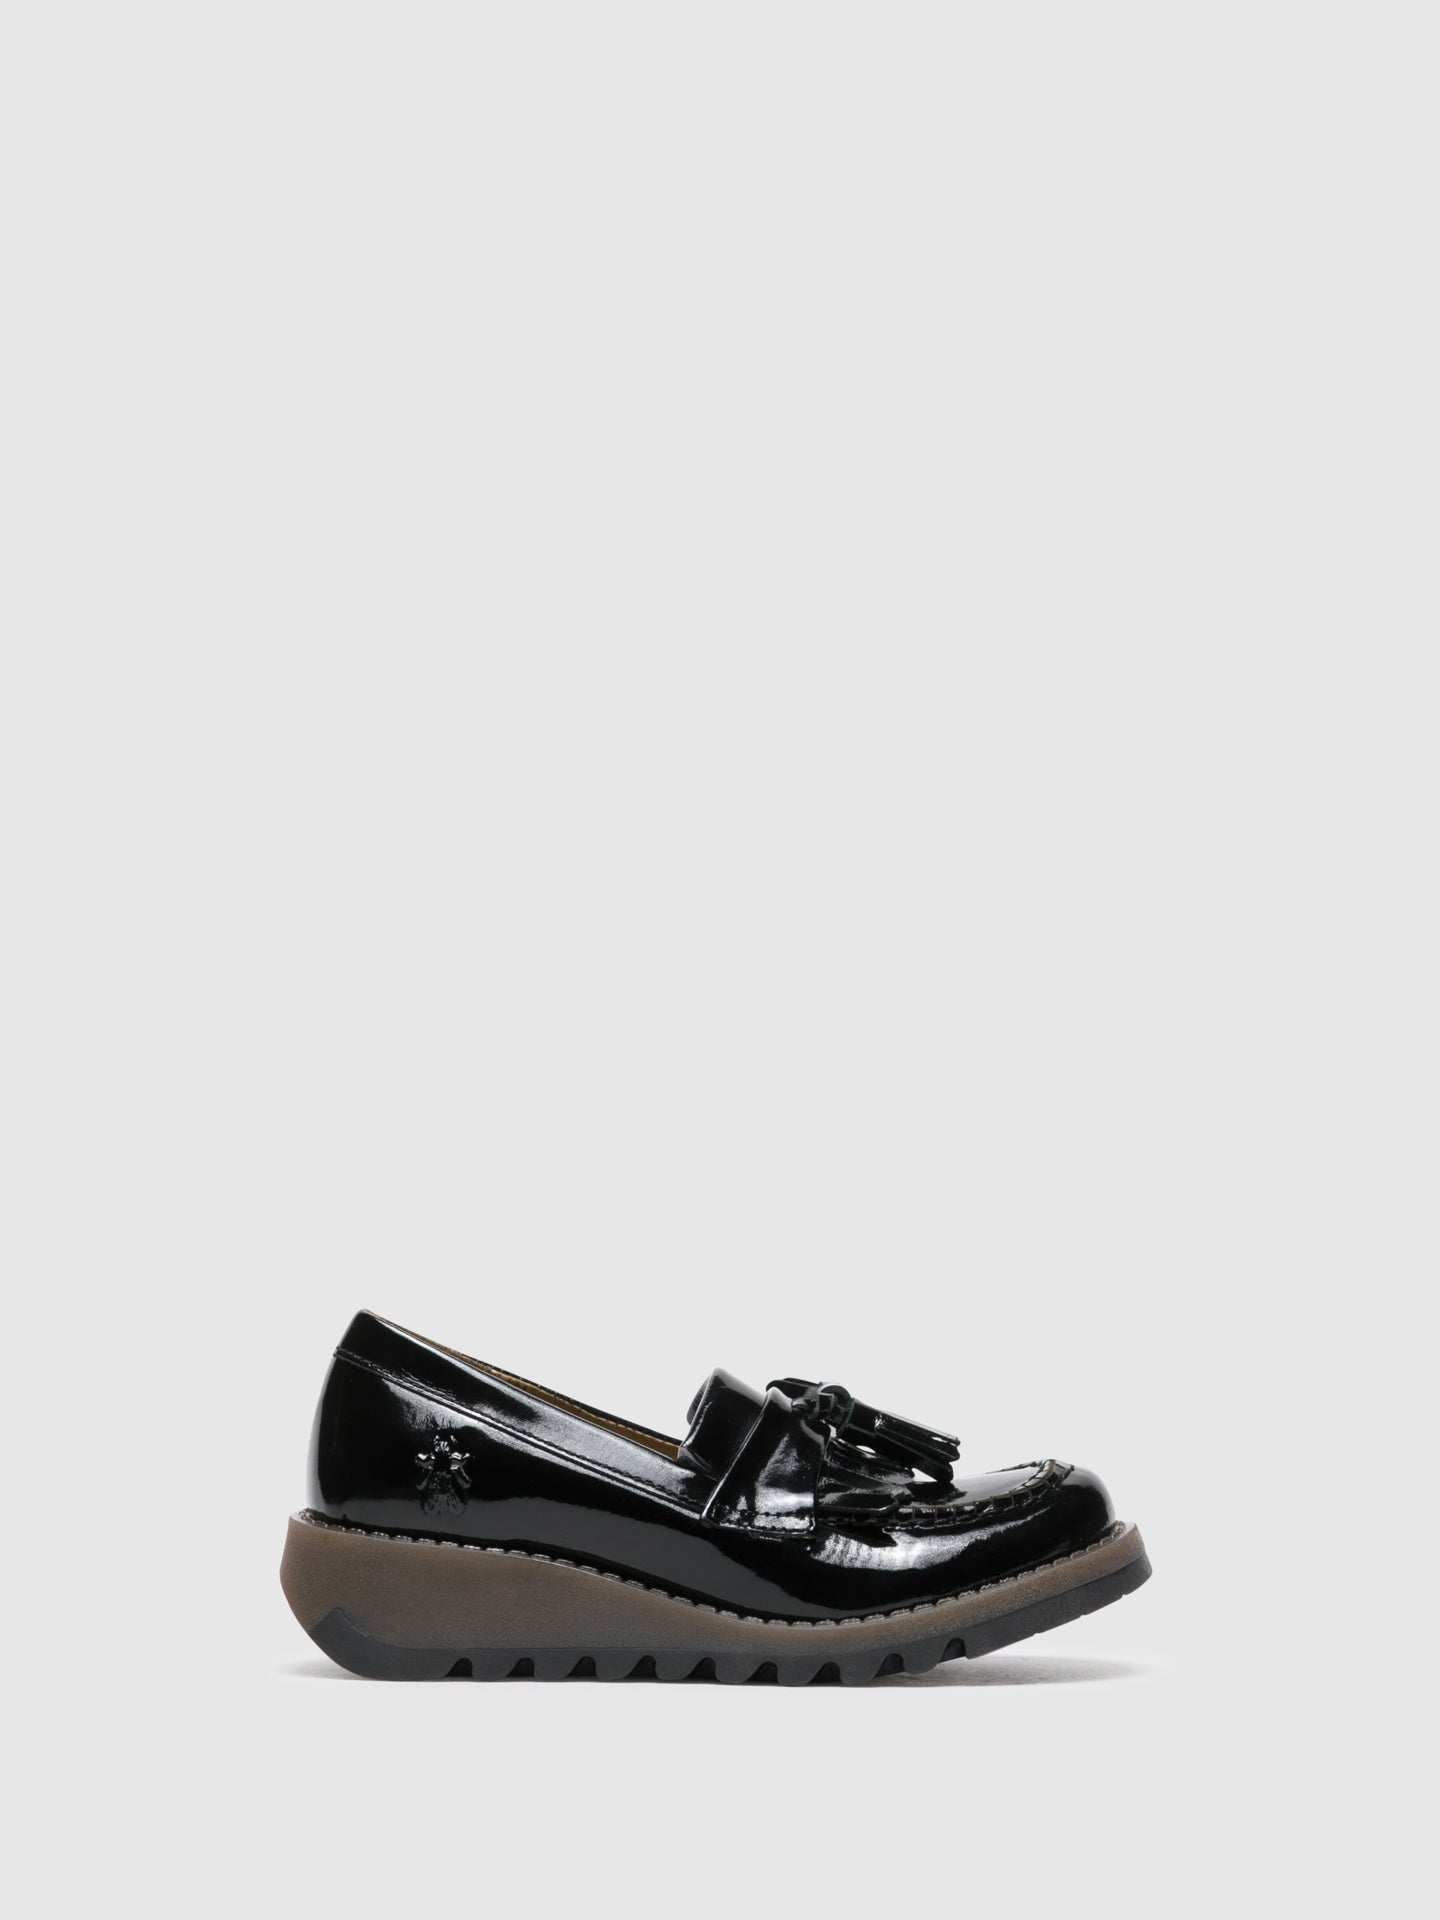 Fly London Gloss Black Loafers Shoes